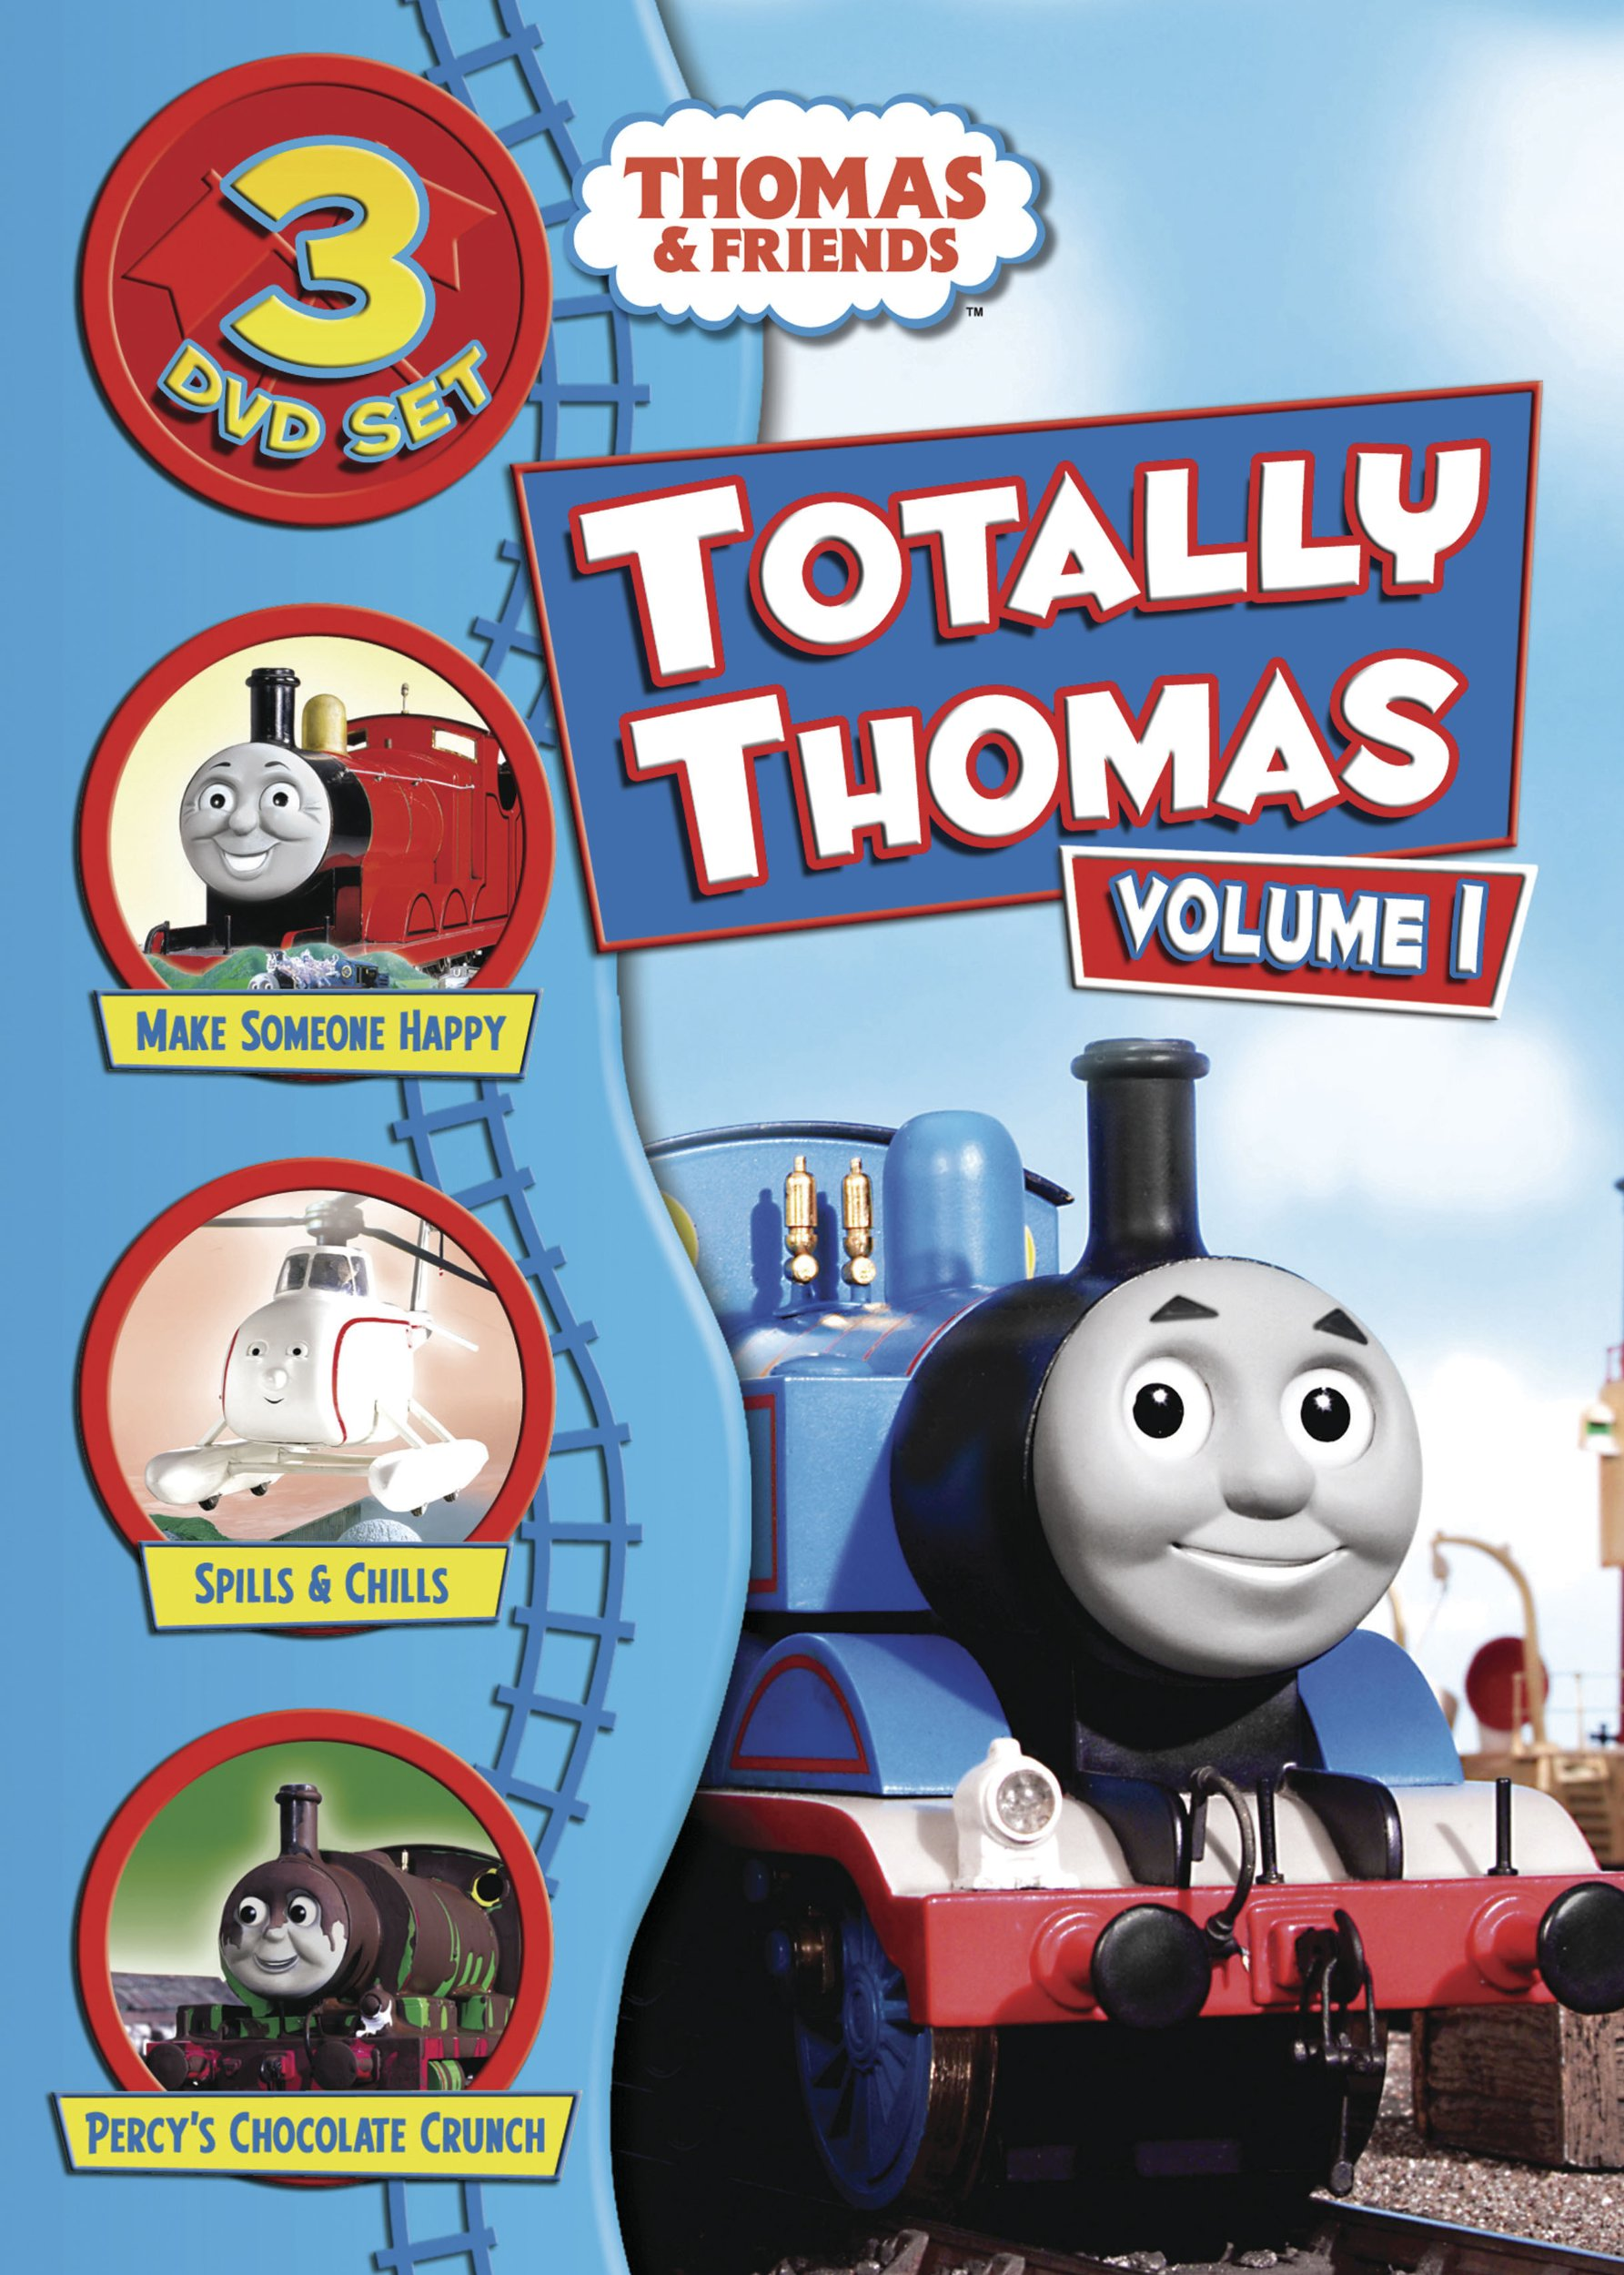 Tho-totally Thomas Vol1 Sacdvd by Universal Studios Home Entertainment